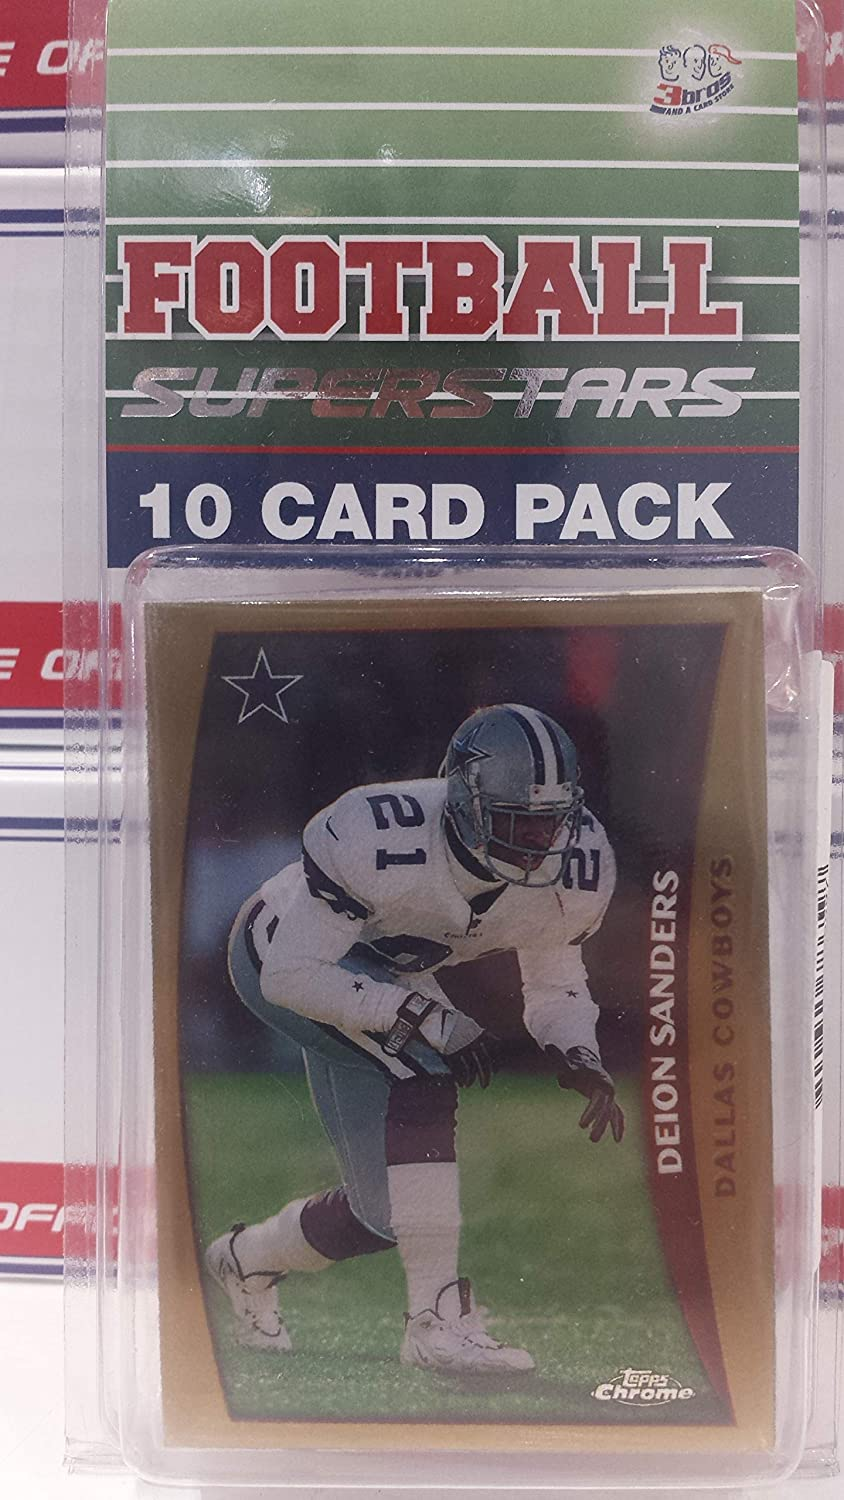 a35c12e6bb4 10 card pack nfl football superstar deion sanders starter kit all different  cards at Amazon's Sports Collectibles Store